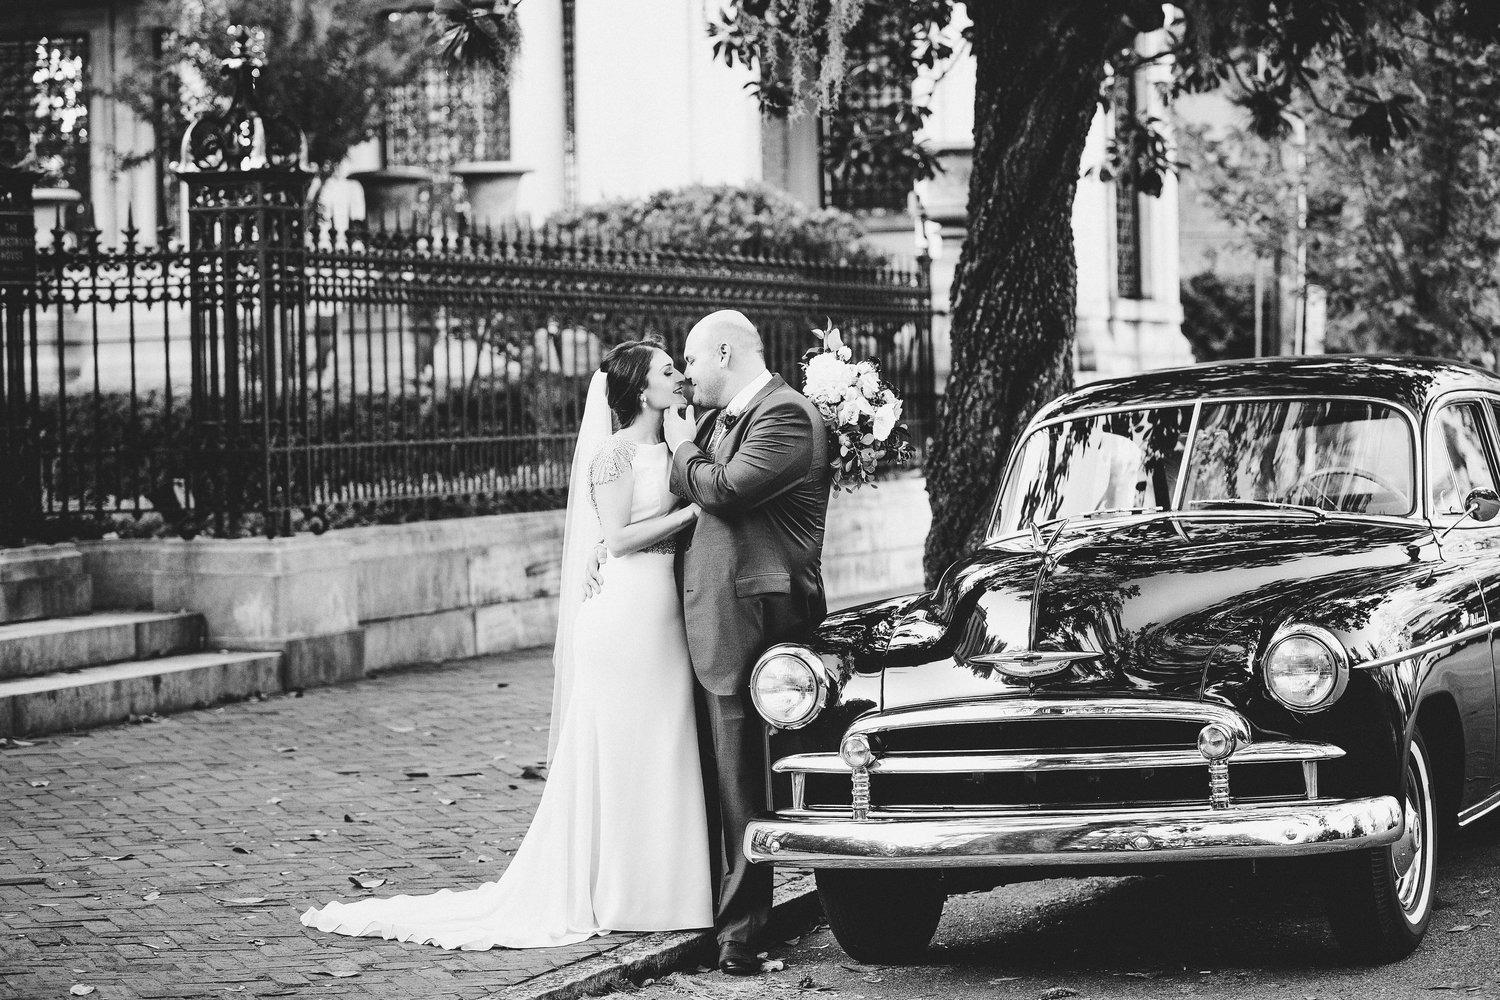 izzy-hudgins-photography-savannah-wedding-ivory-and-beau-bridal-boutique-savannah-wedding-planner-colonial-house-of-flowers-forsyth-park-wedding-old-fort-jackson-wedding-squidwed-films-savannah-boutique-savannah-weddings-37.jpg